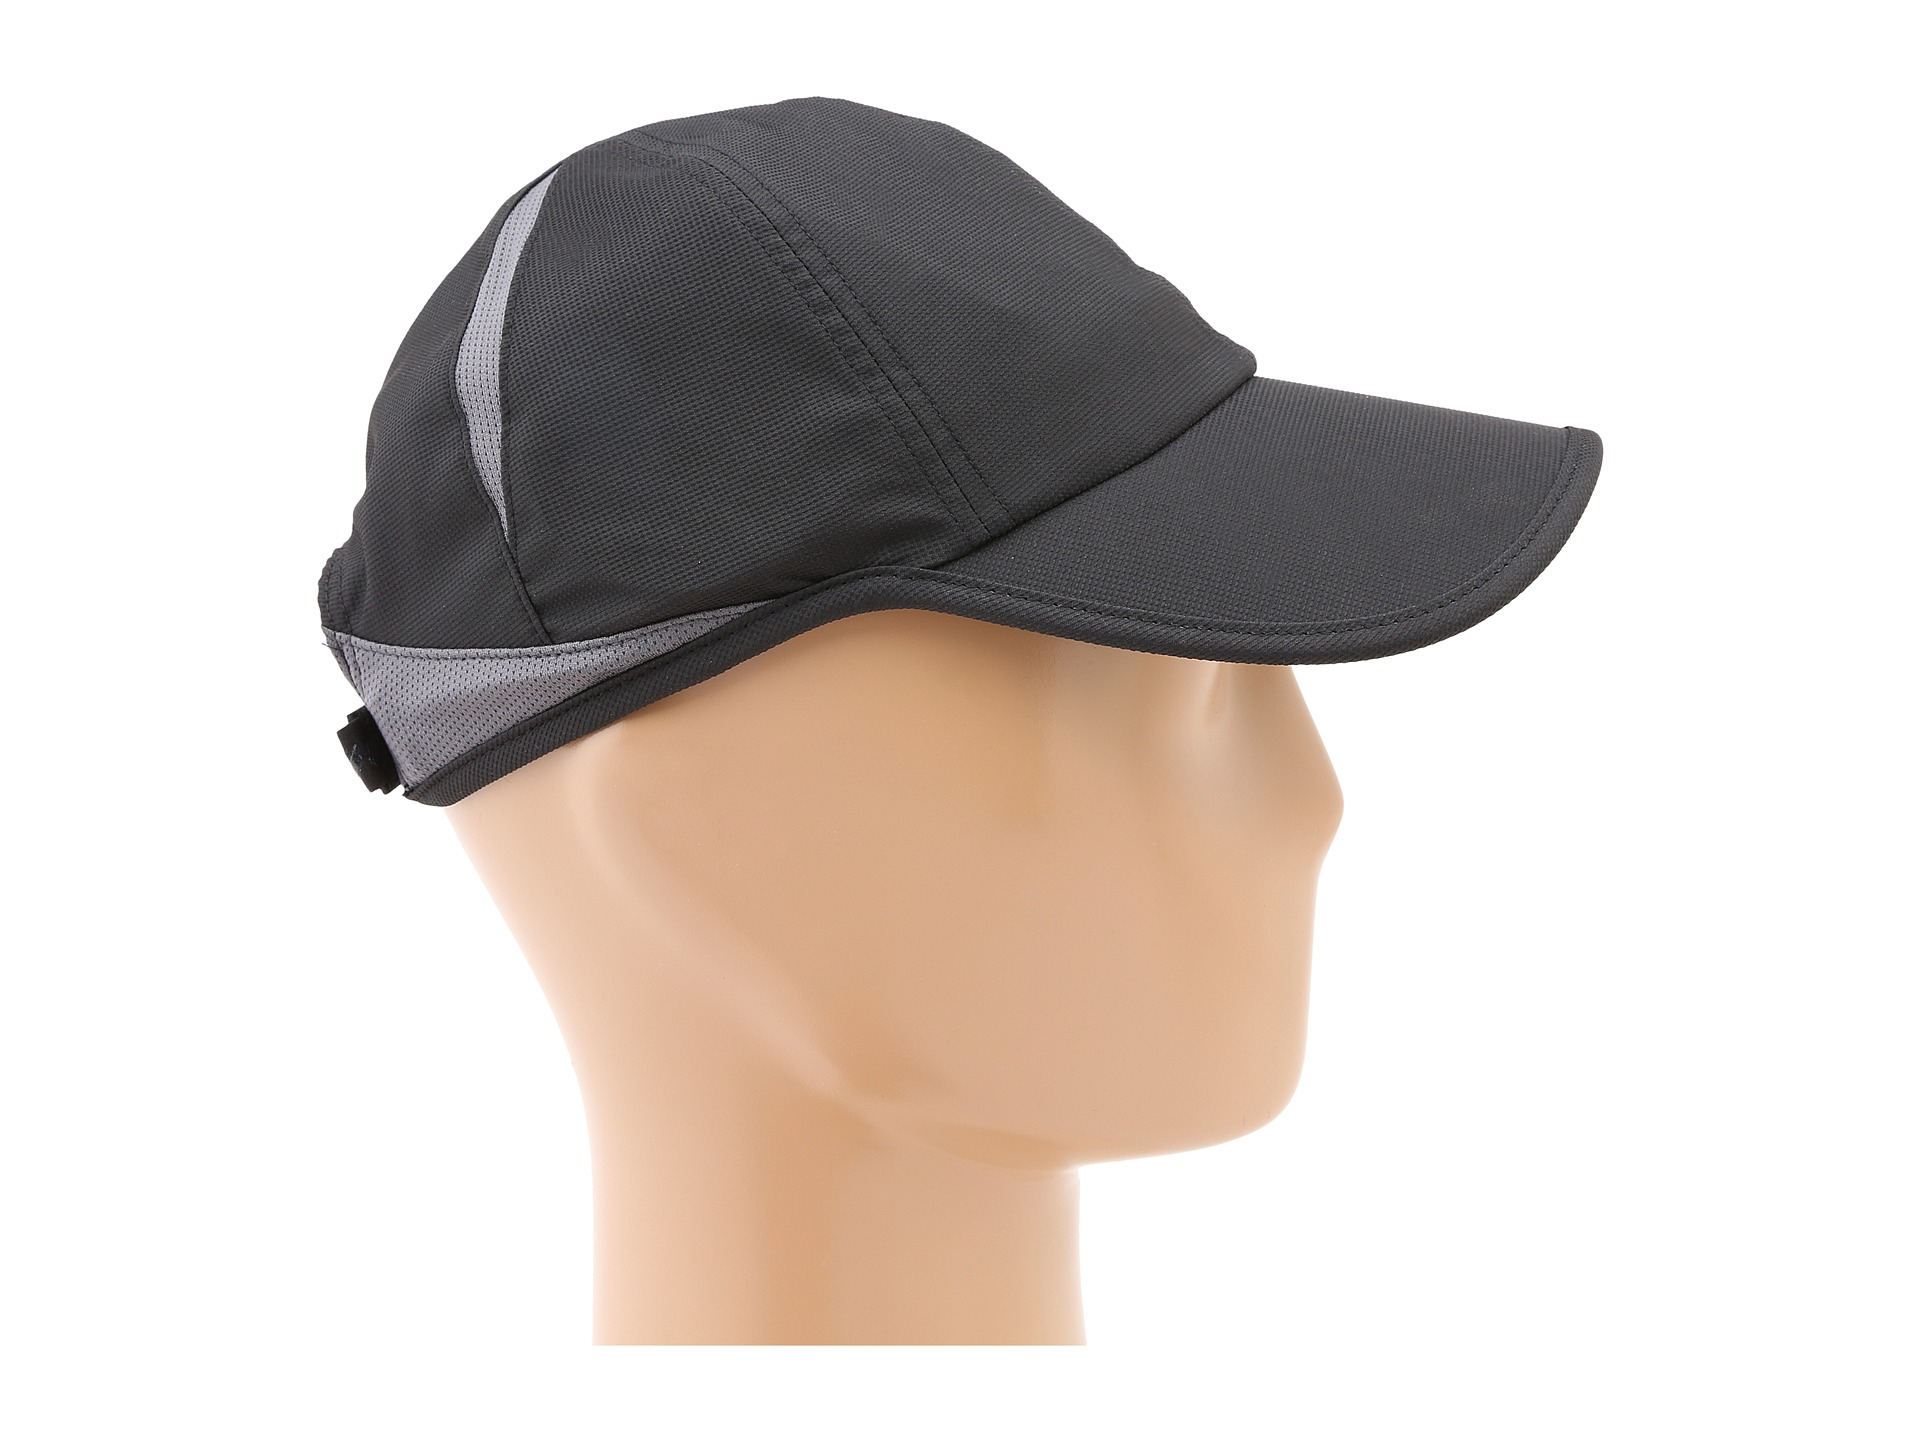 Lyst - The North Face Breakaway Hat in Black a82918660b5